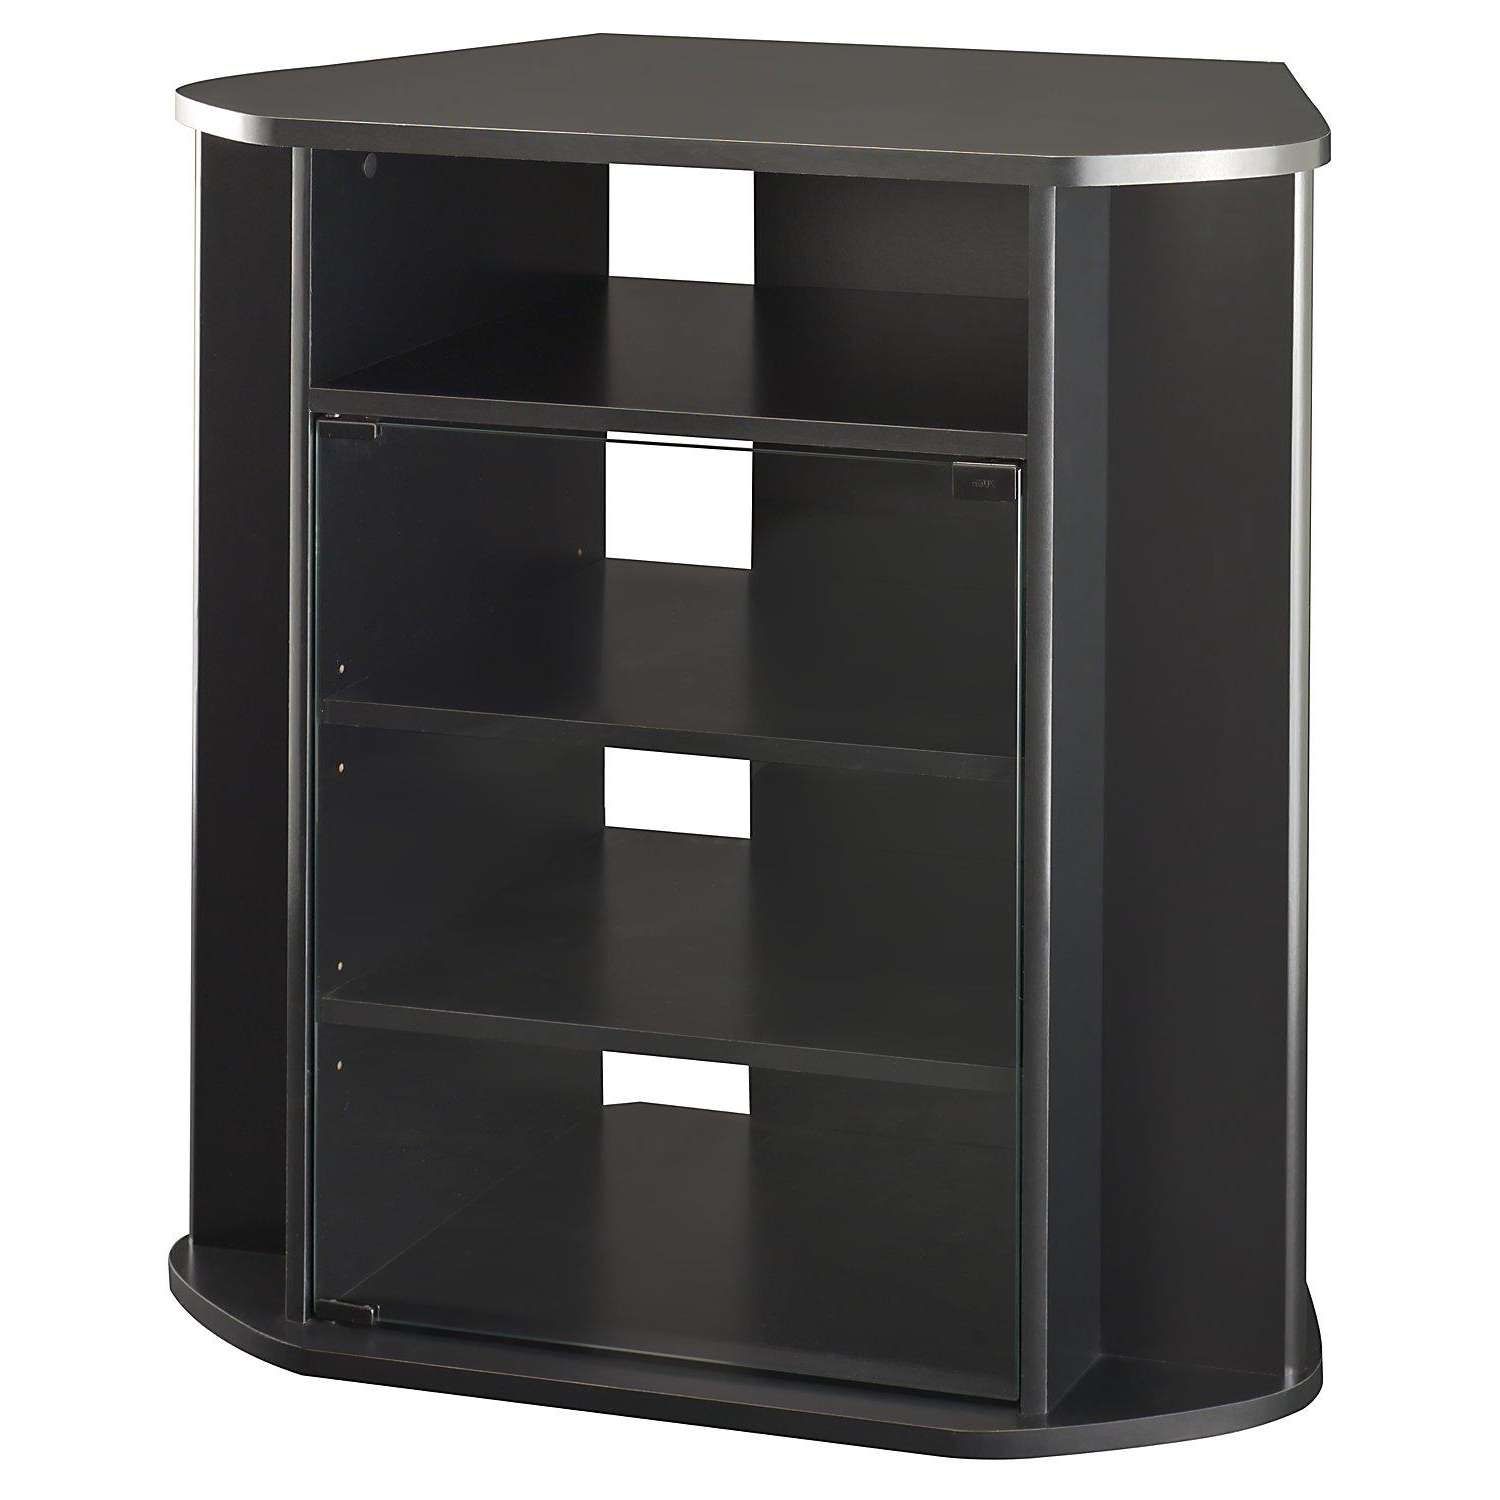 Tall Corner Tv Stand With Glass Door Cabinet In Black Color With Corner Tv Cabinets With Glass Doors (View 8 of 20)